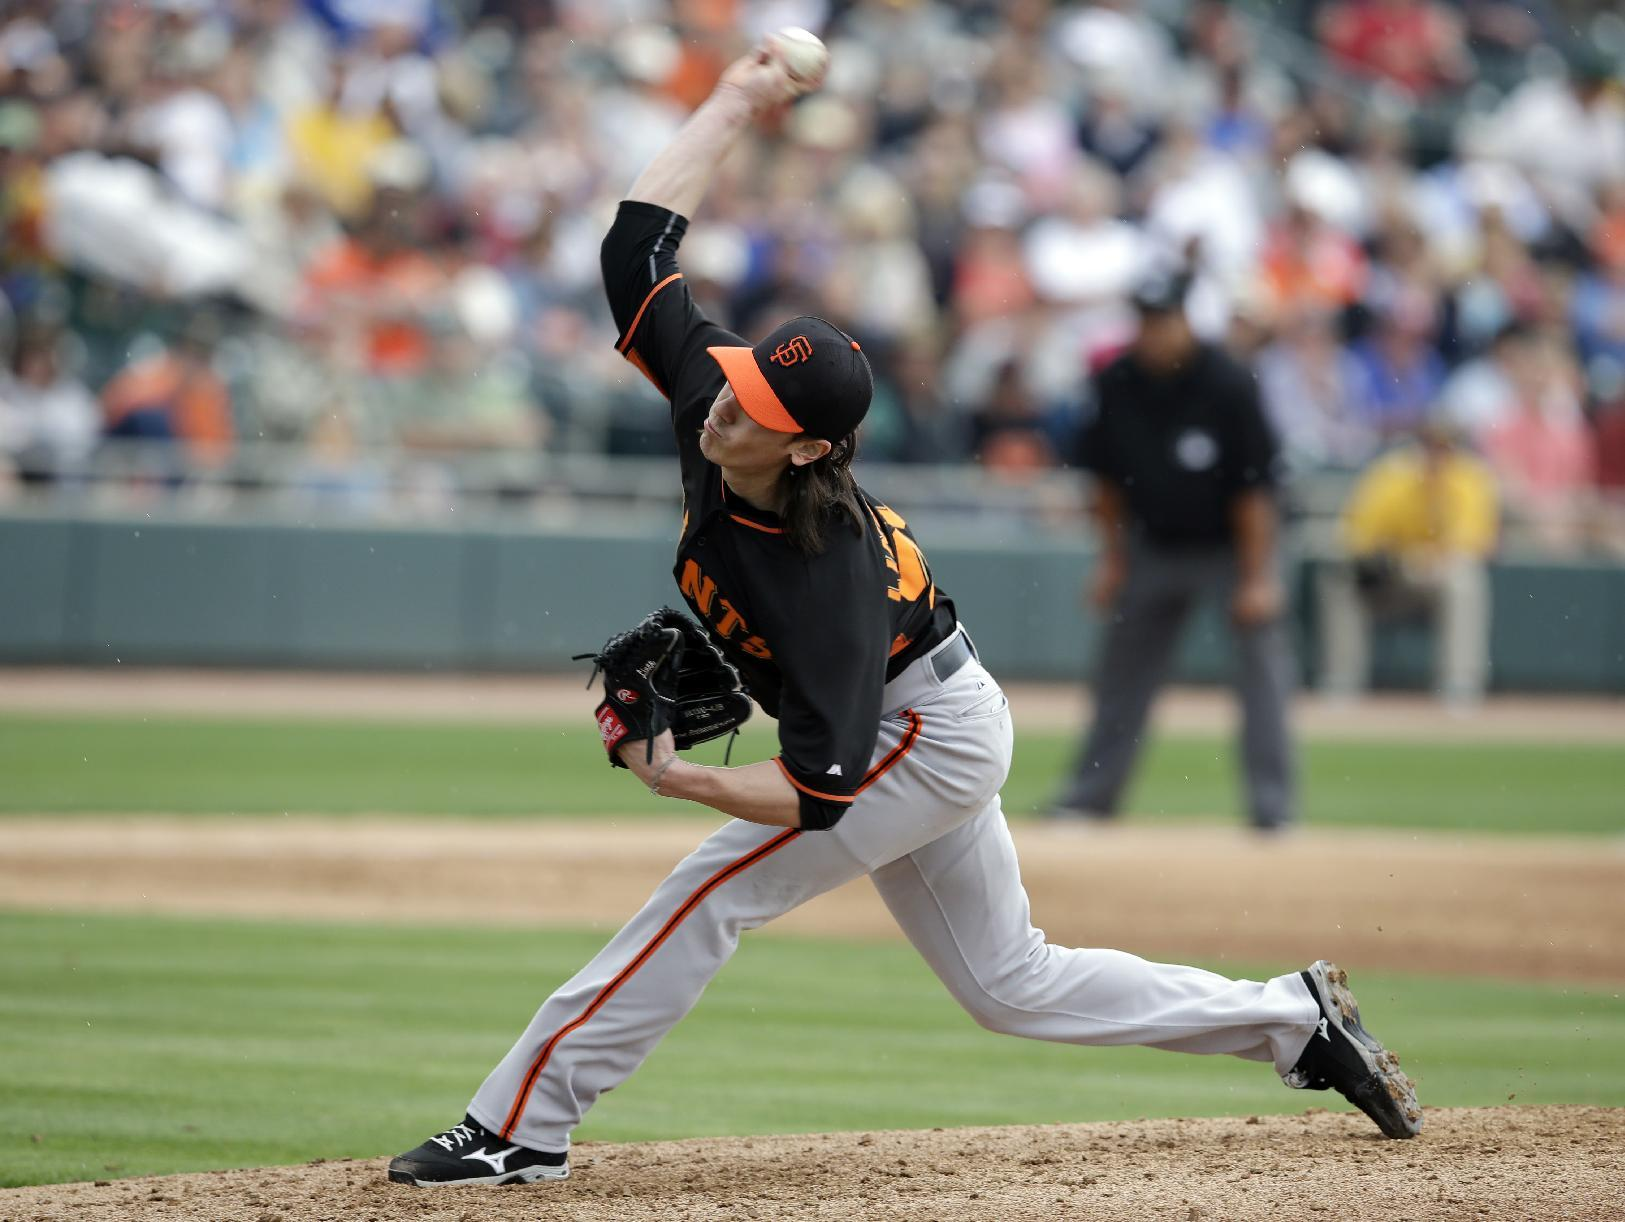 Bumgarner hit hard in spring debut, Athletics beat Giants